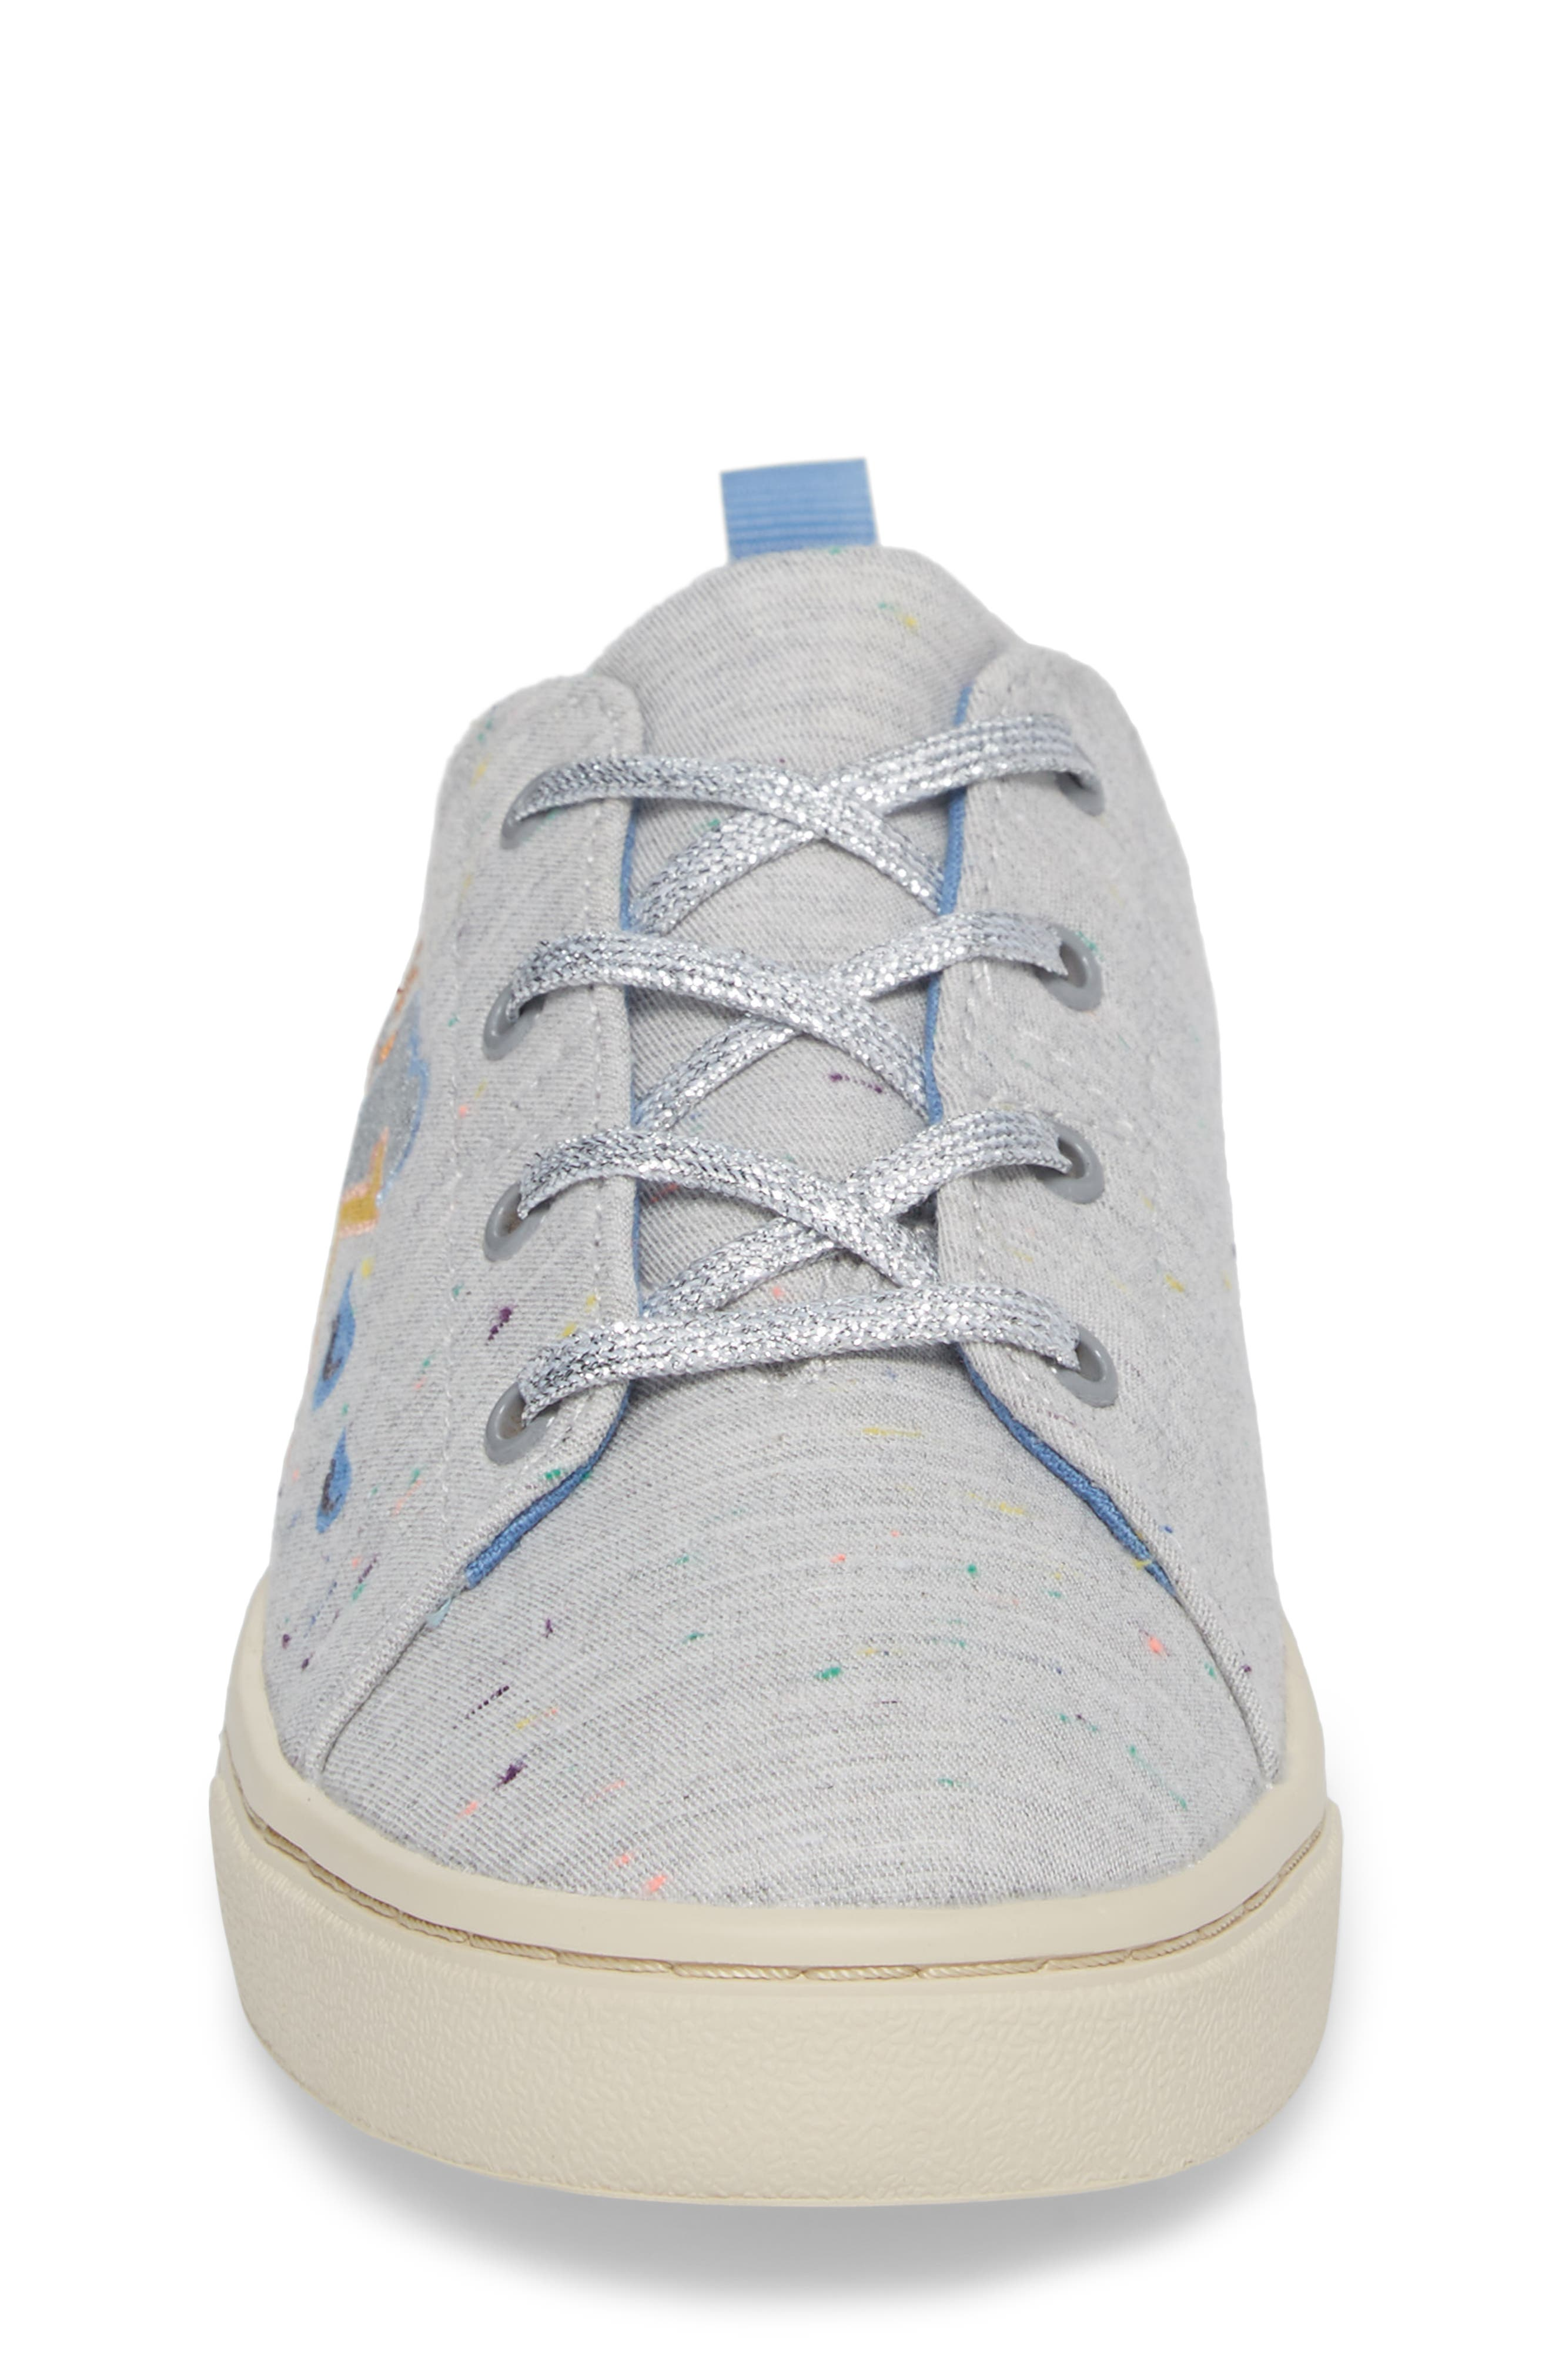 Lenny Embroidered Sneaker,                             Alternate thumbnail 4, color,                             Grey Multi Drizzly Weather